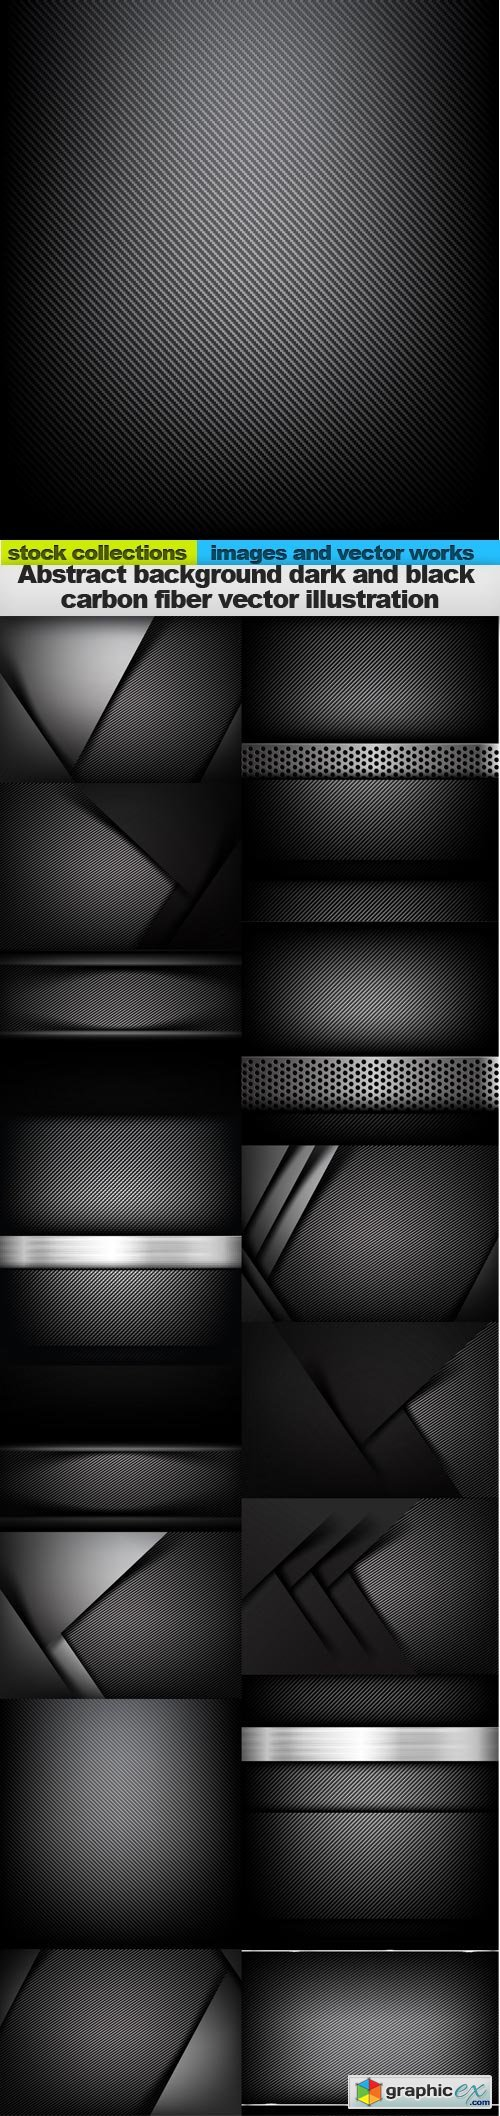 Abstract background dark and black carbon fiber vector illustration, 15 x EPS